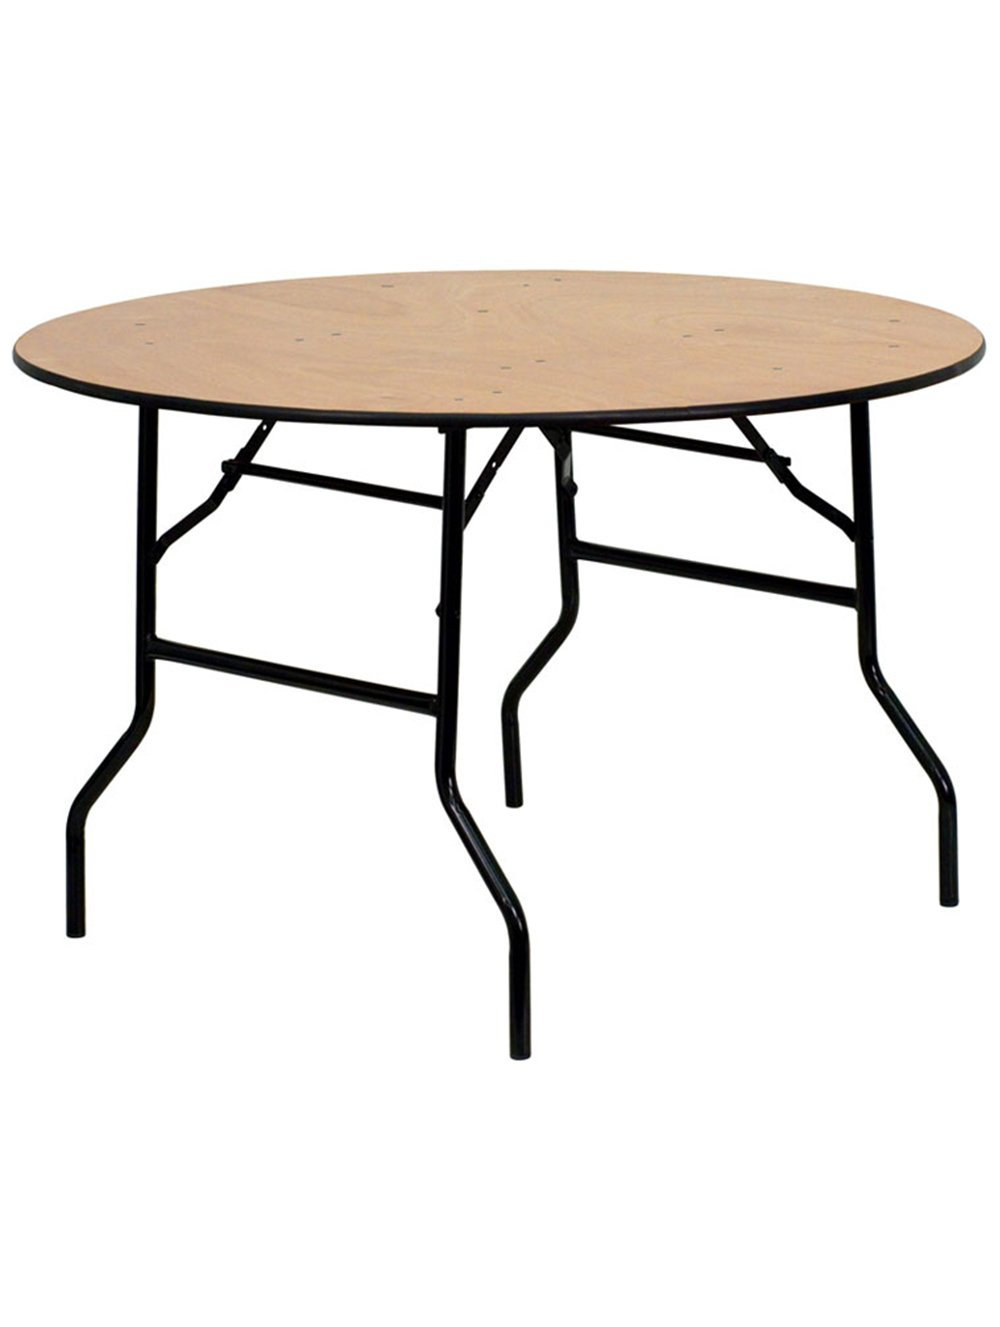 Round wooden banqueting table